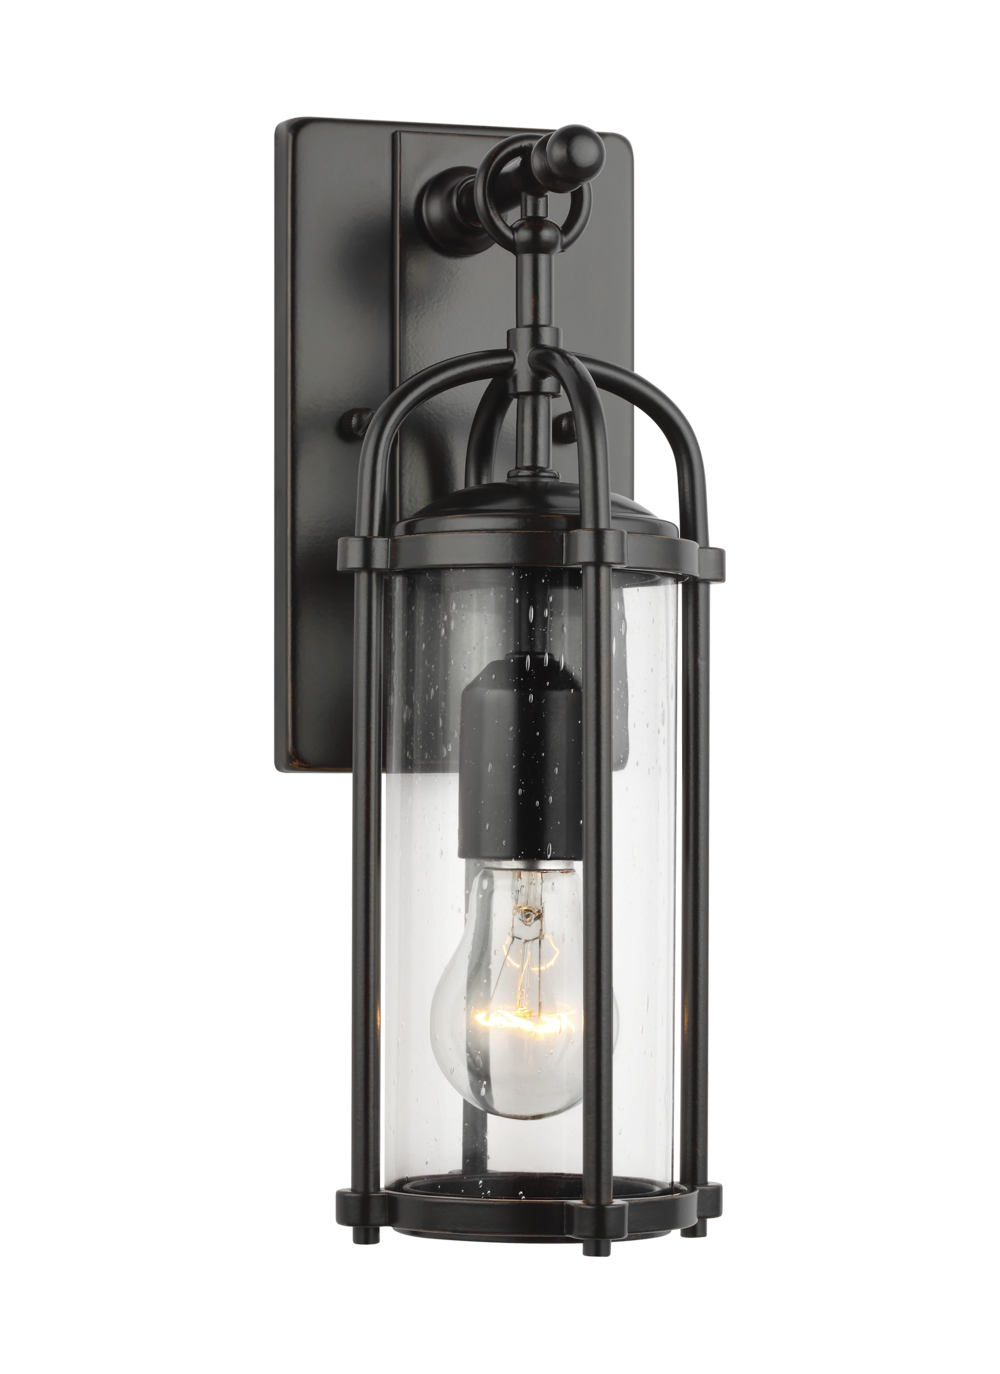 H - Exterior Light - Feiss - OL7621ES.png